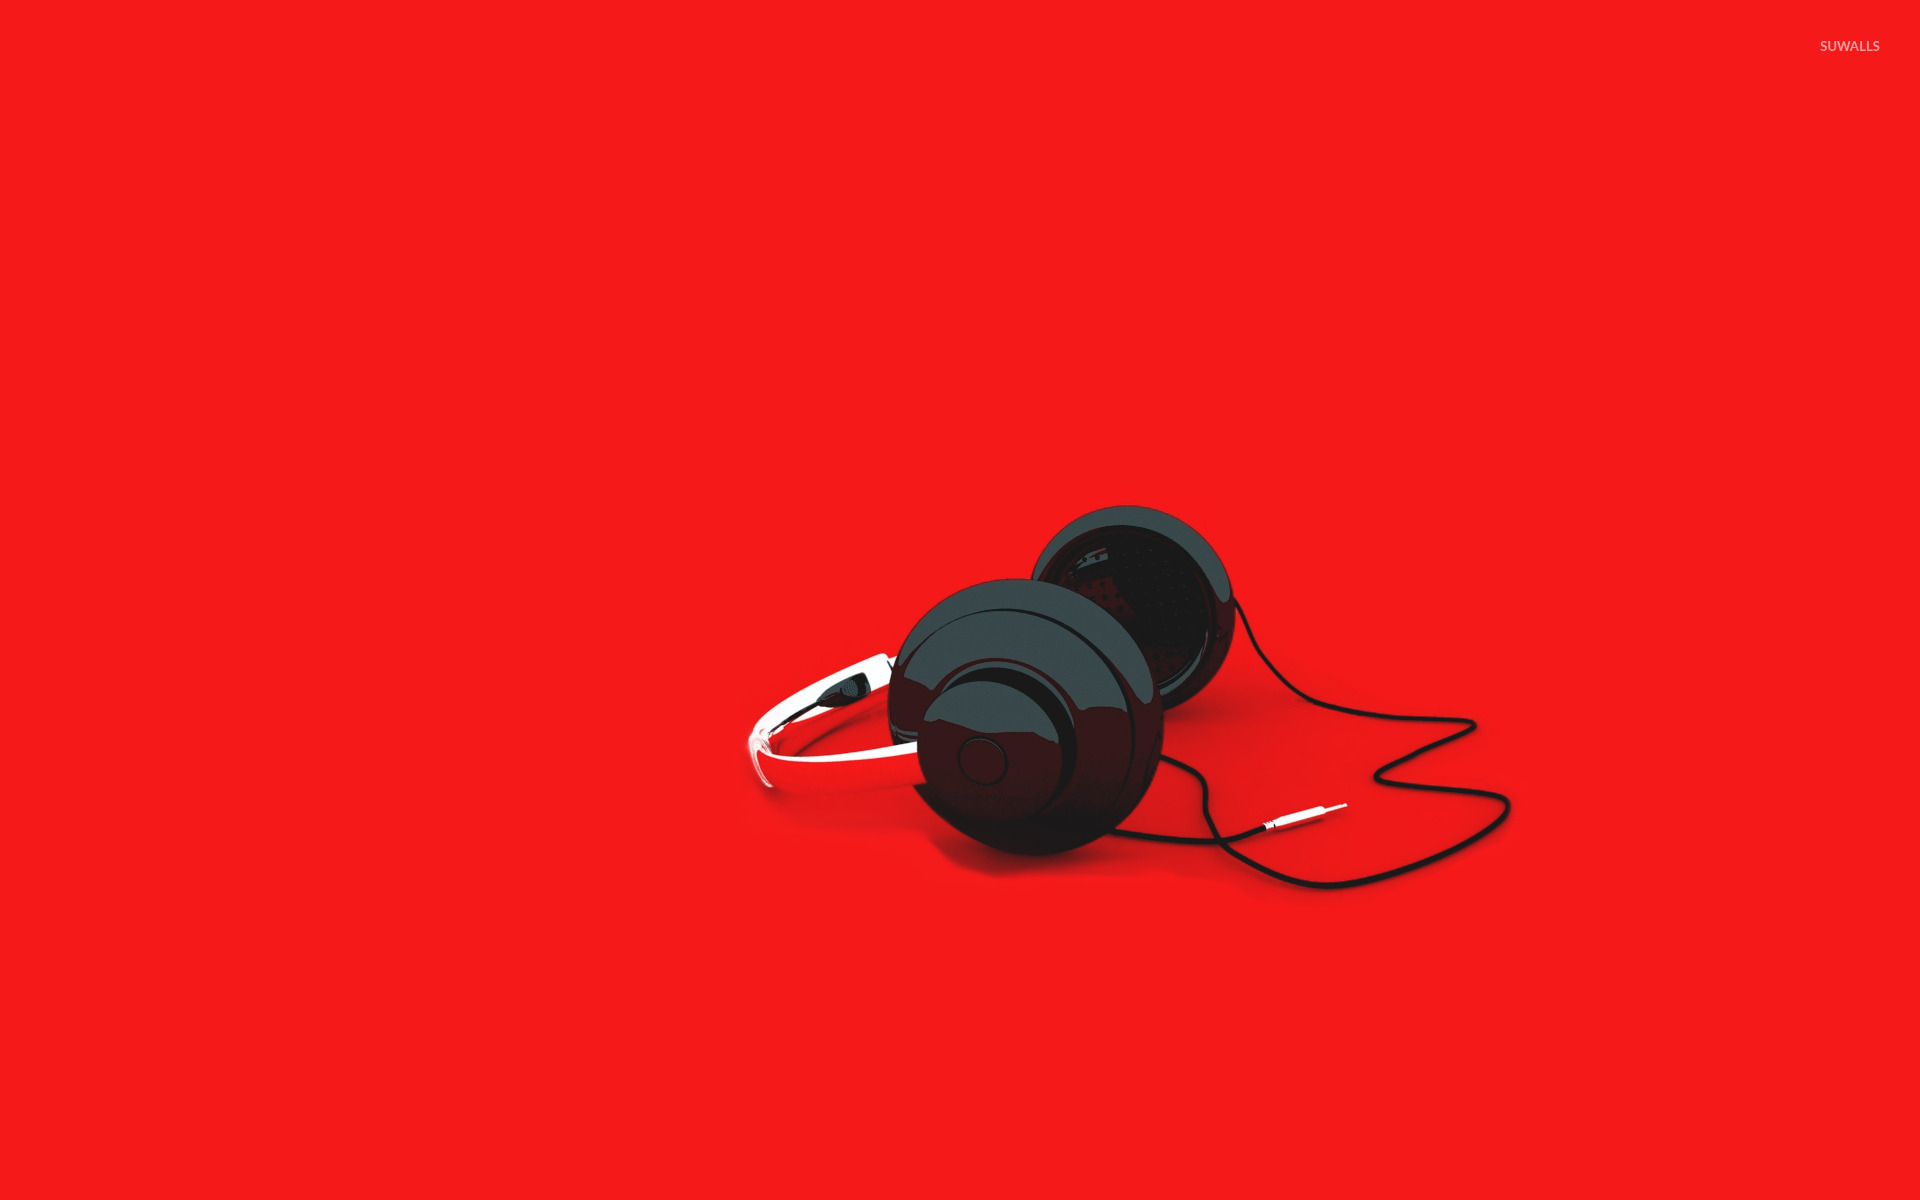 backgrounds wallpapers earbuds - photo #10